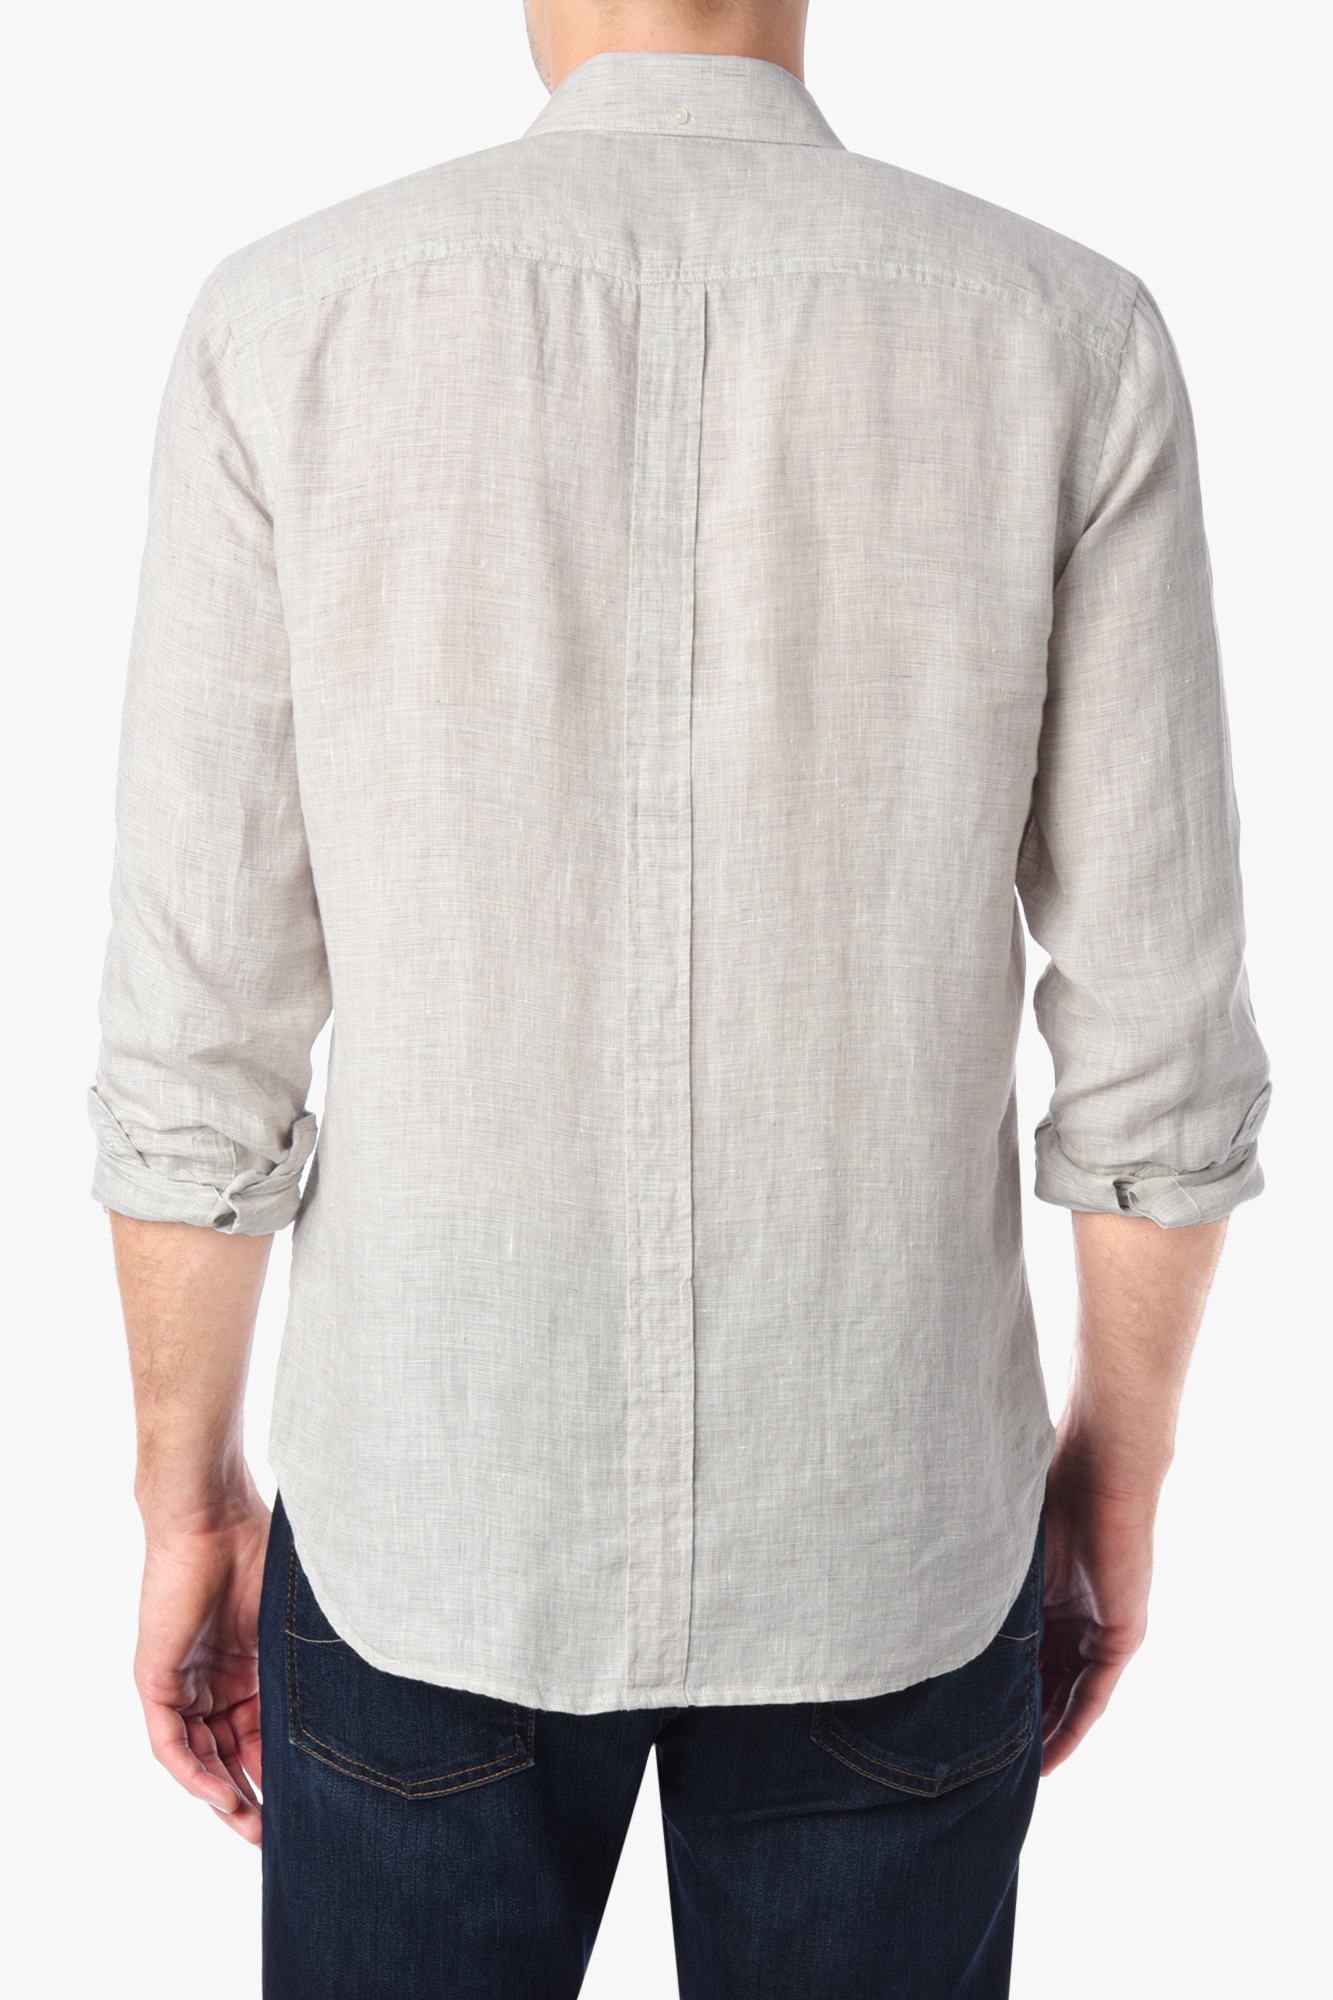 7 For All Mankind Long Sleeve Lightweight Oxford Shirt In